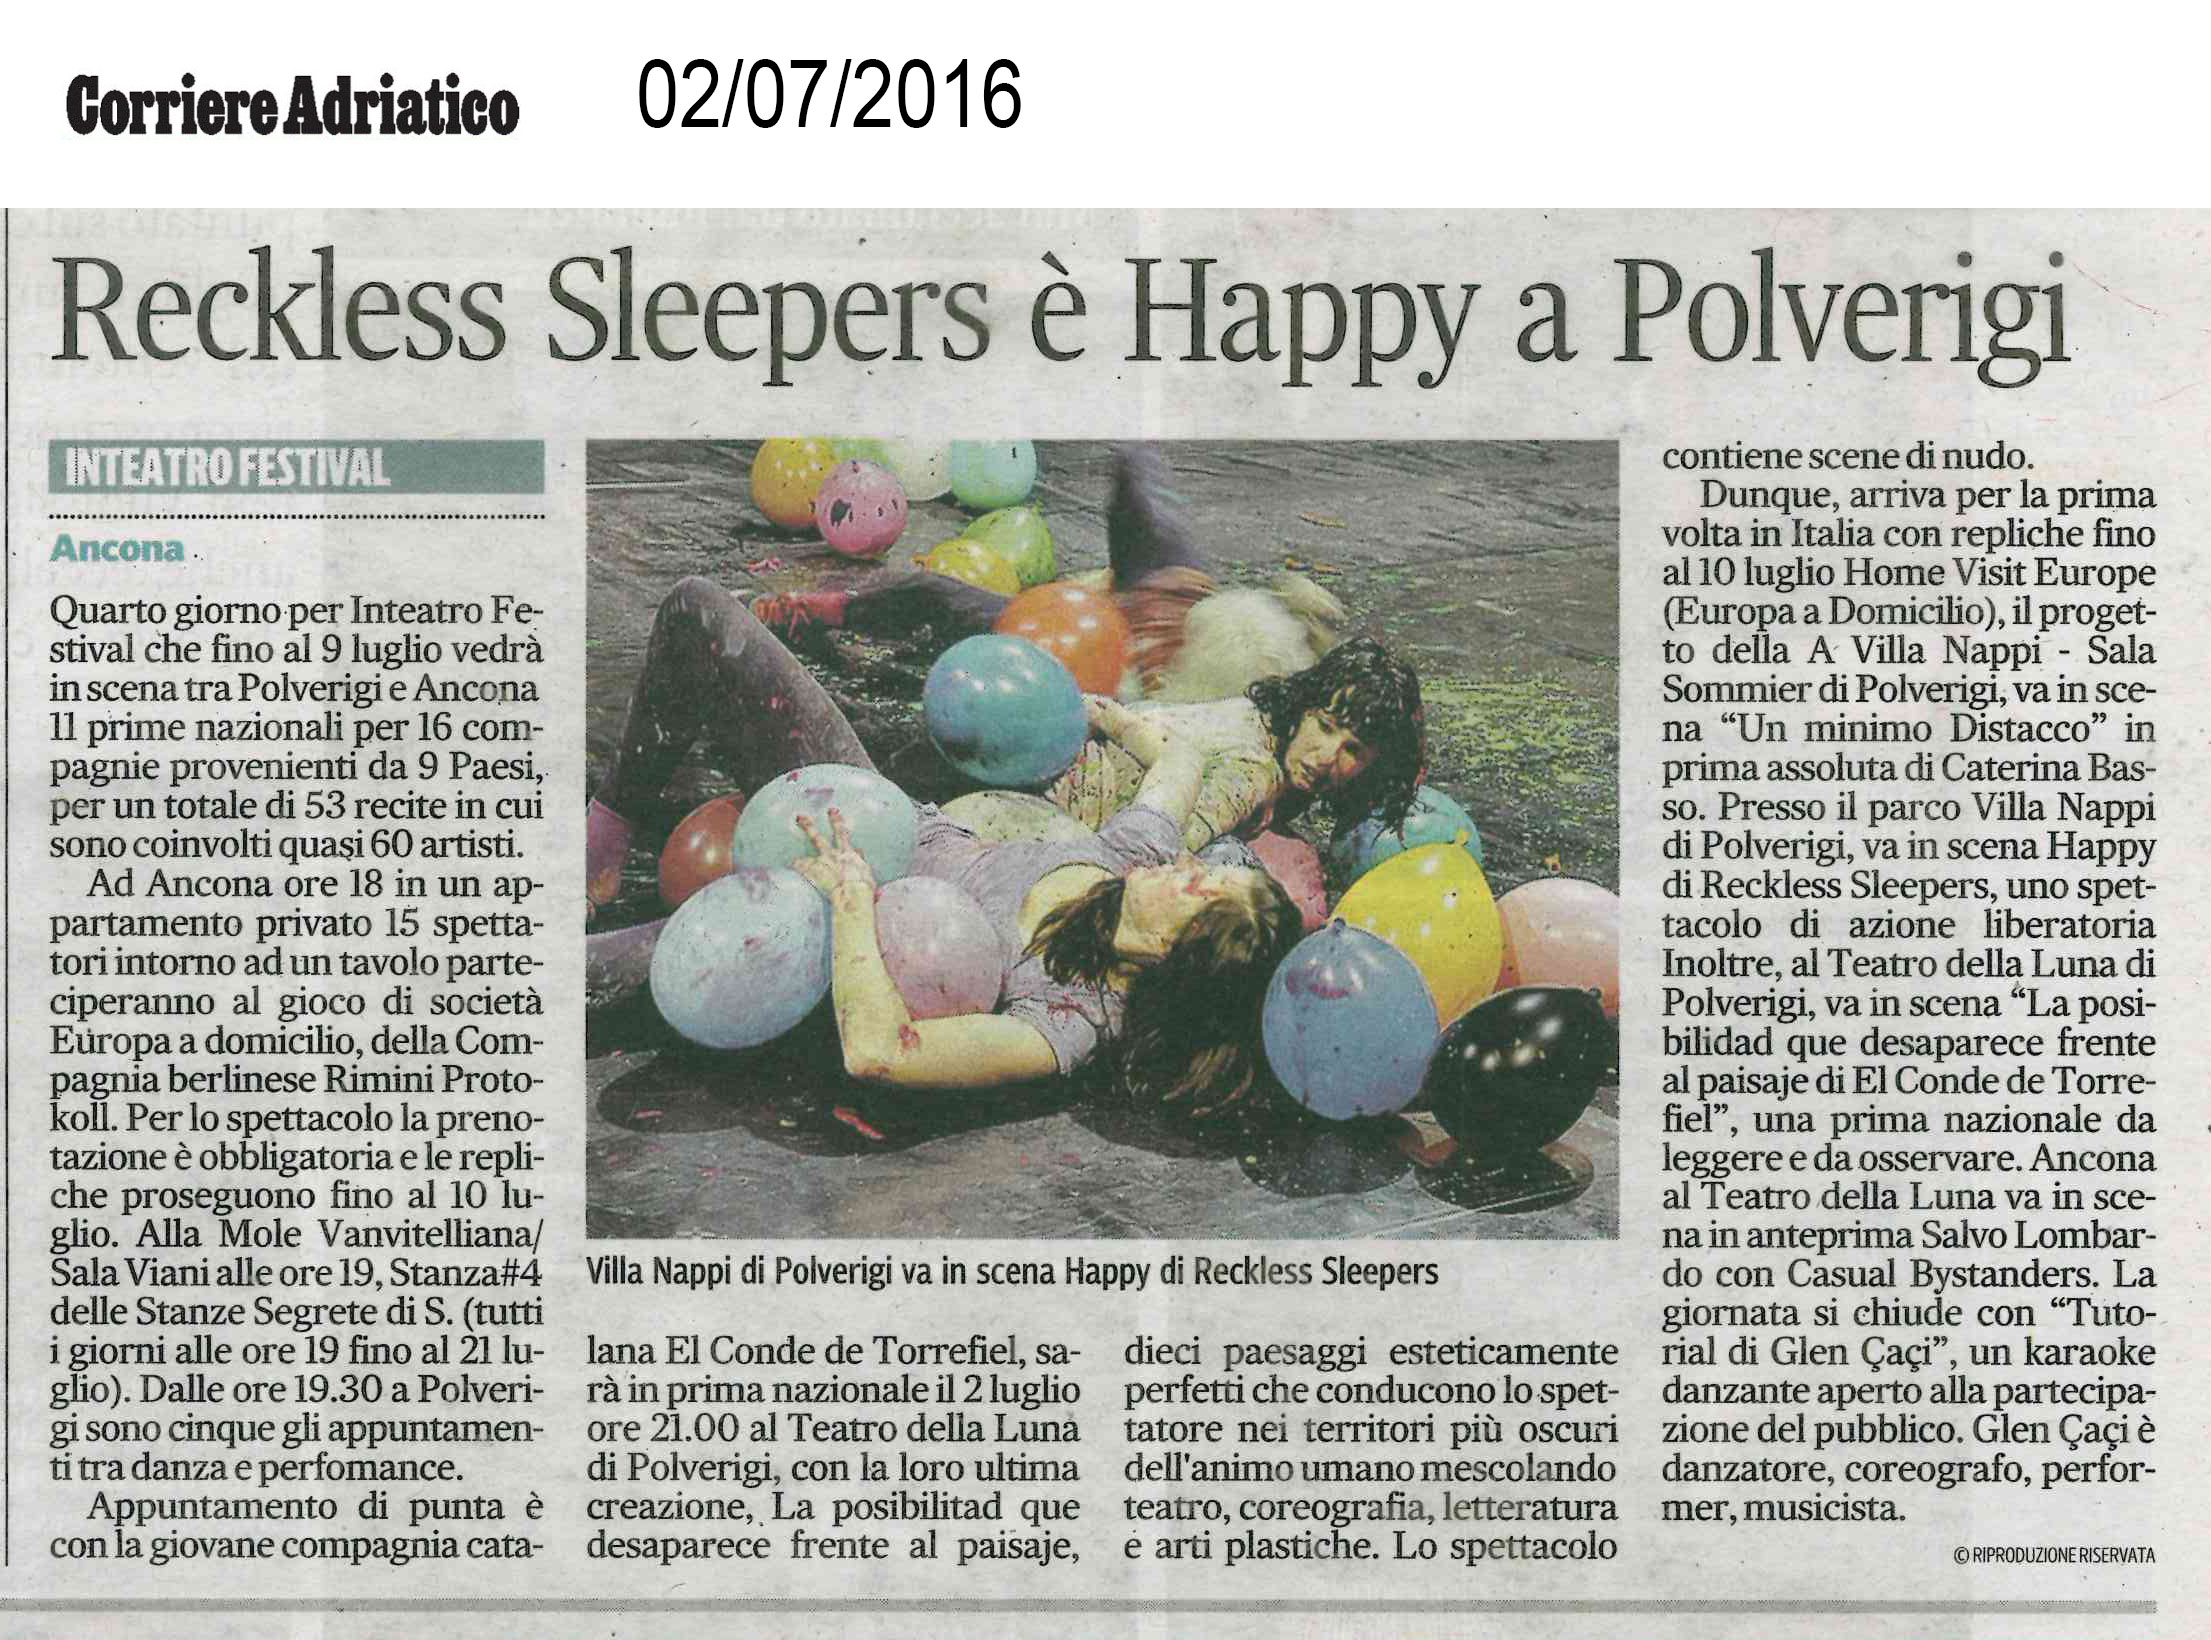 2016_07_02_-reckless-sleepers-è-happy-a-polverici_corriere-adriatico